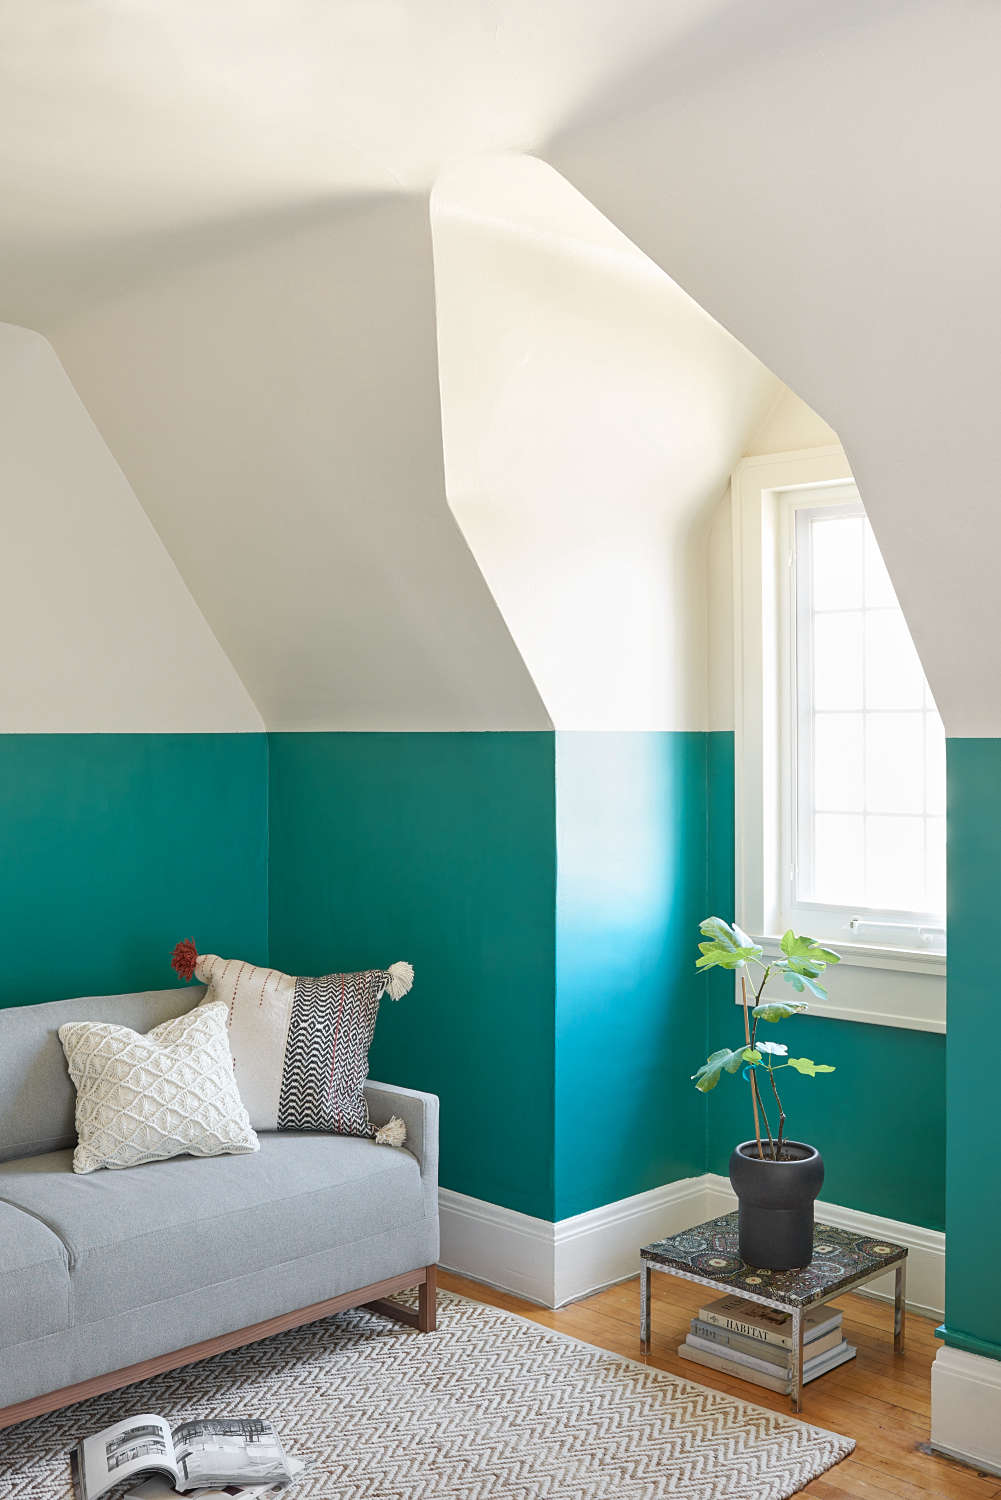 west elm sofa sleeper ottoman fold out single bed a vibrant office update from farrow & ball - remodelista